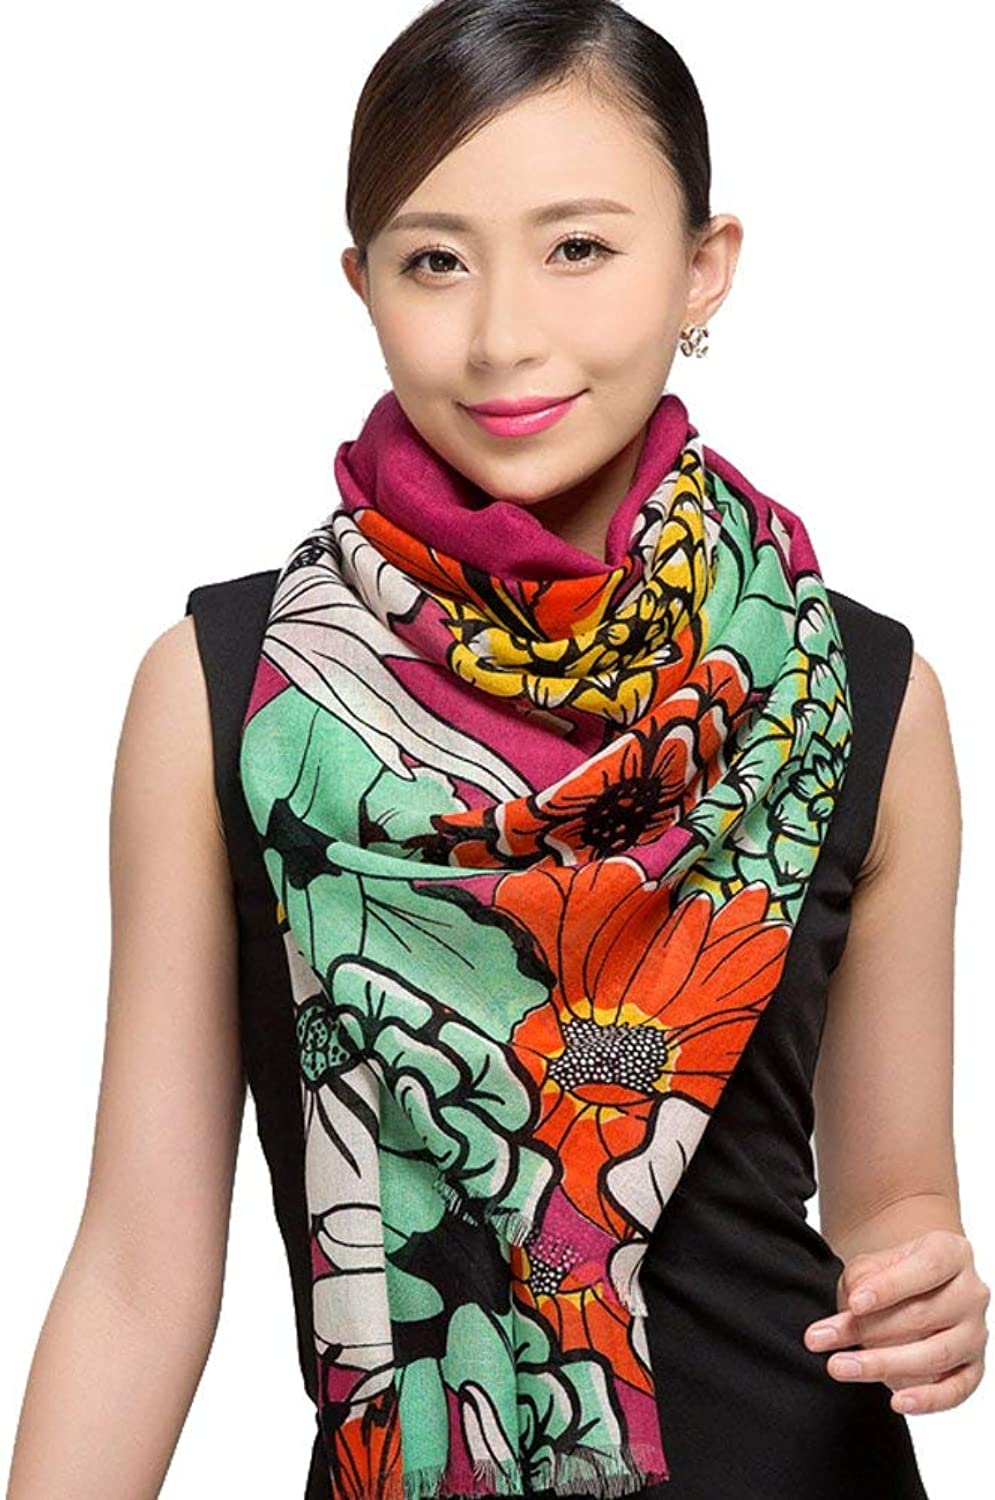 Paioup Scarf Ladies warm winter air conditioning shawl